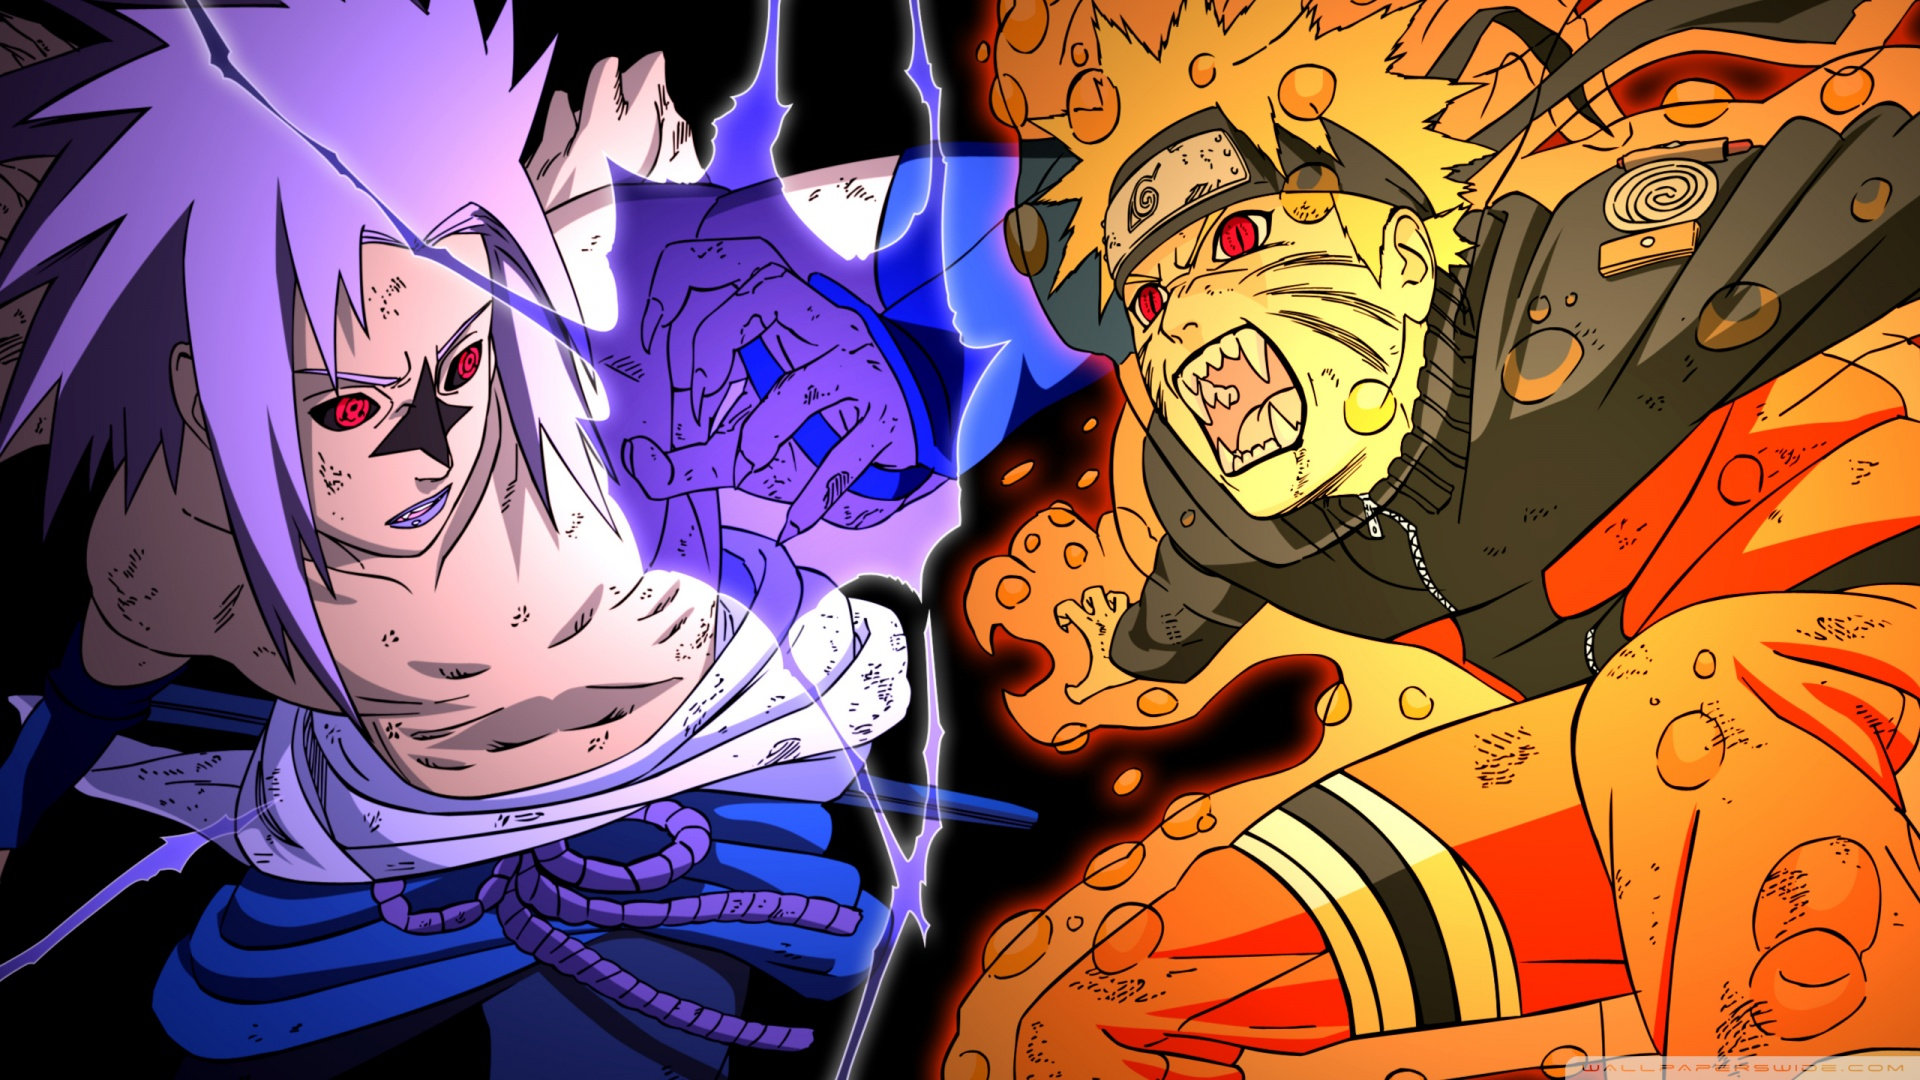 Naruto vs Sasuke - Fighting HD desktop wallpaper : Widescreen